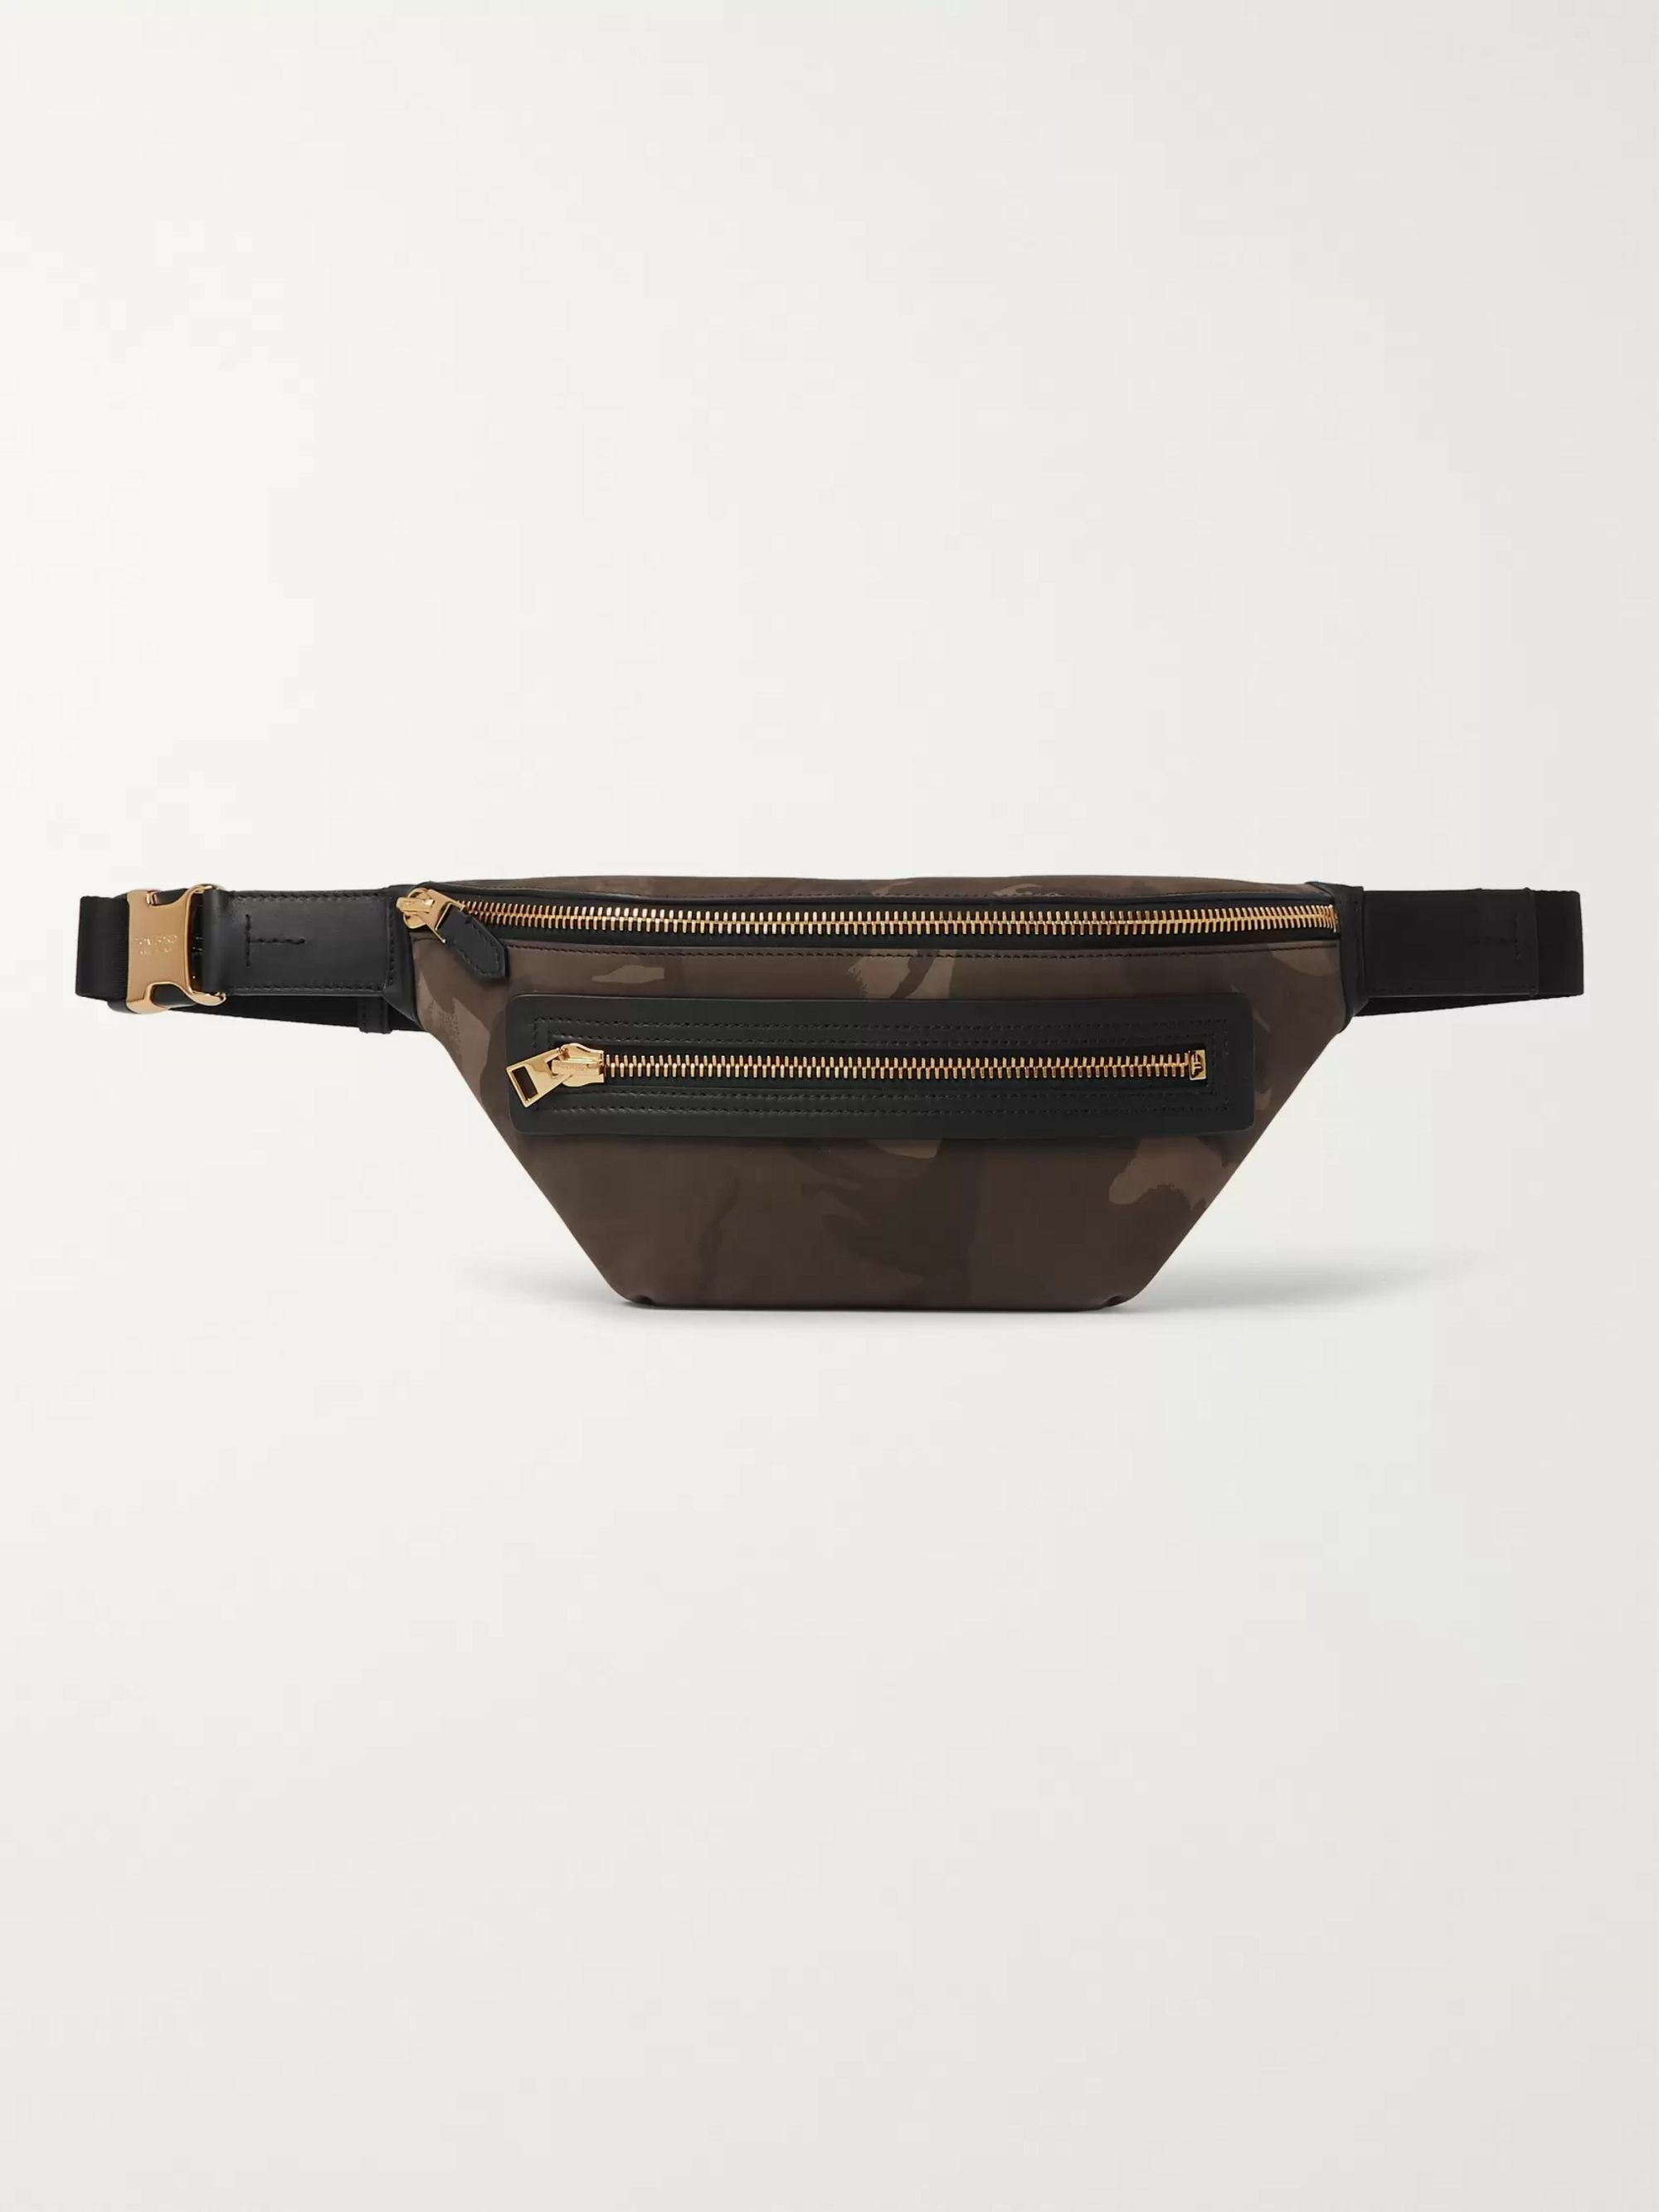 TOM FORD Leather-Trimmed Camouflage-Print Nubuck Belt Bag